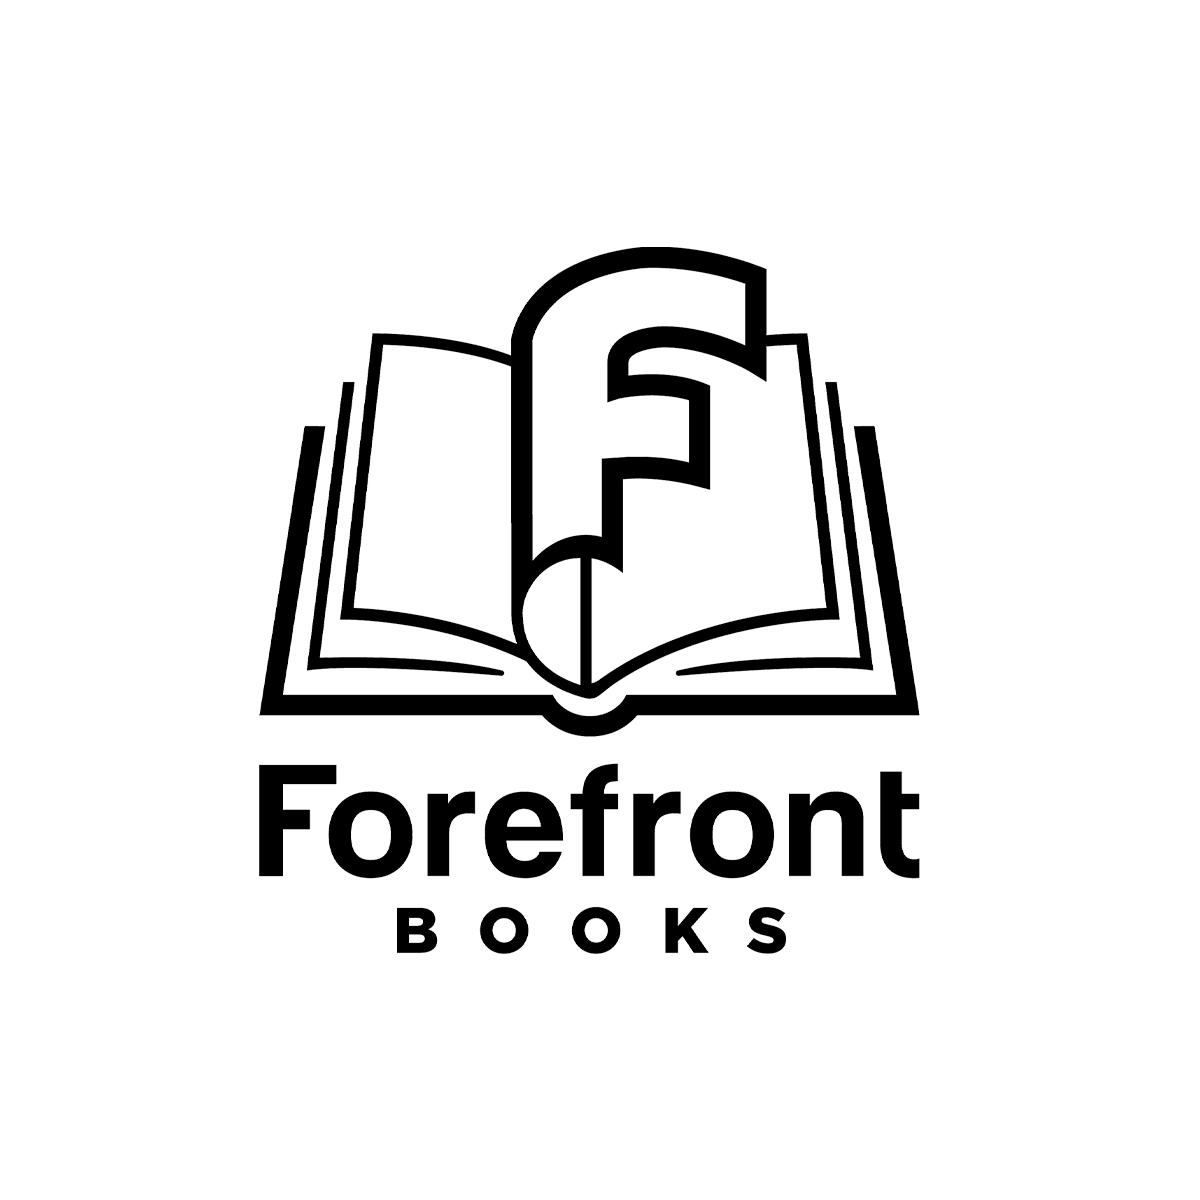 forefront-books